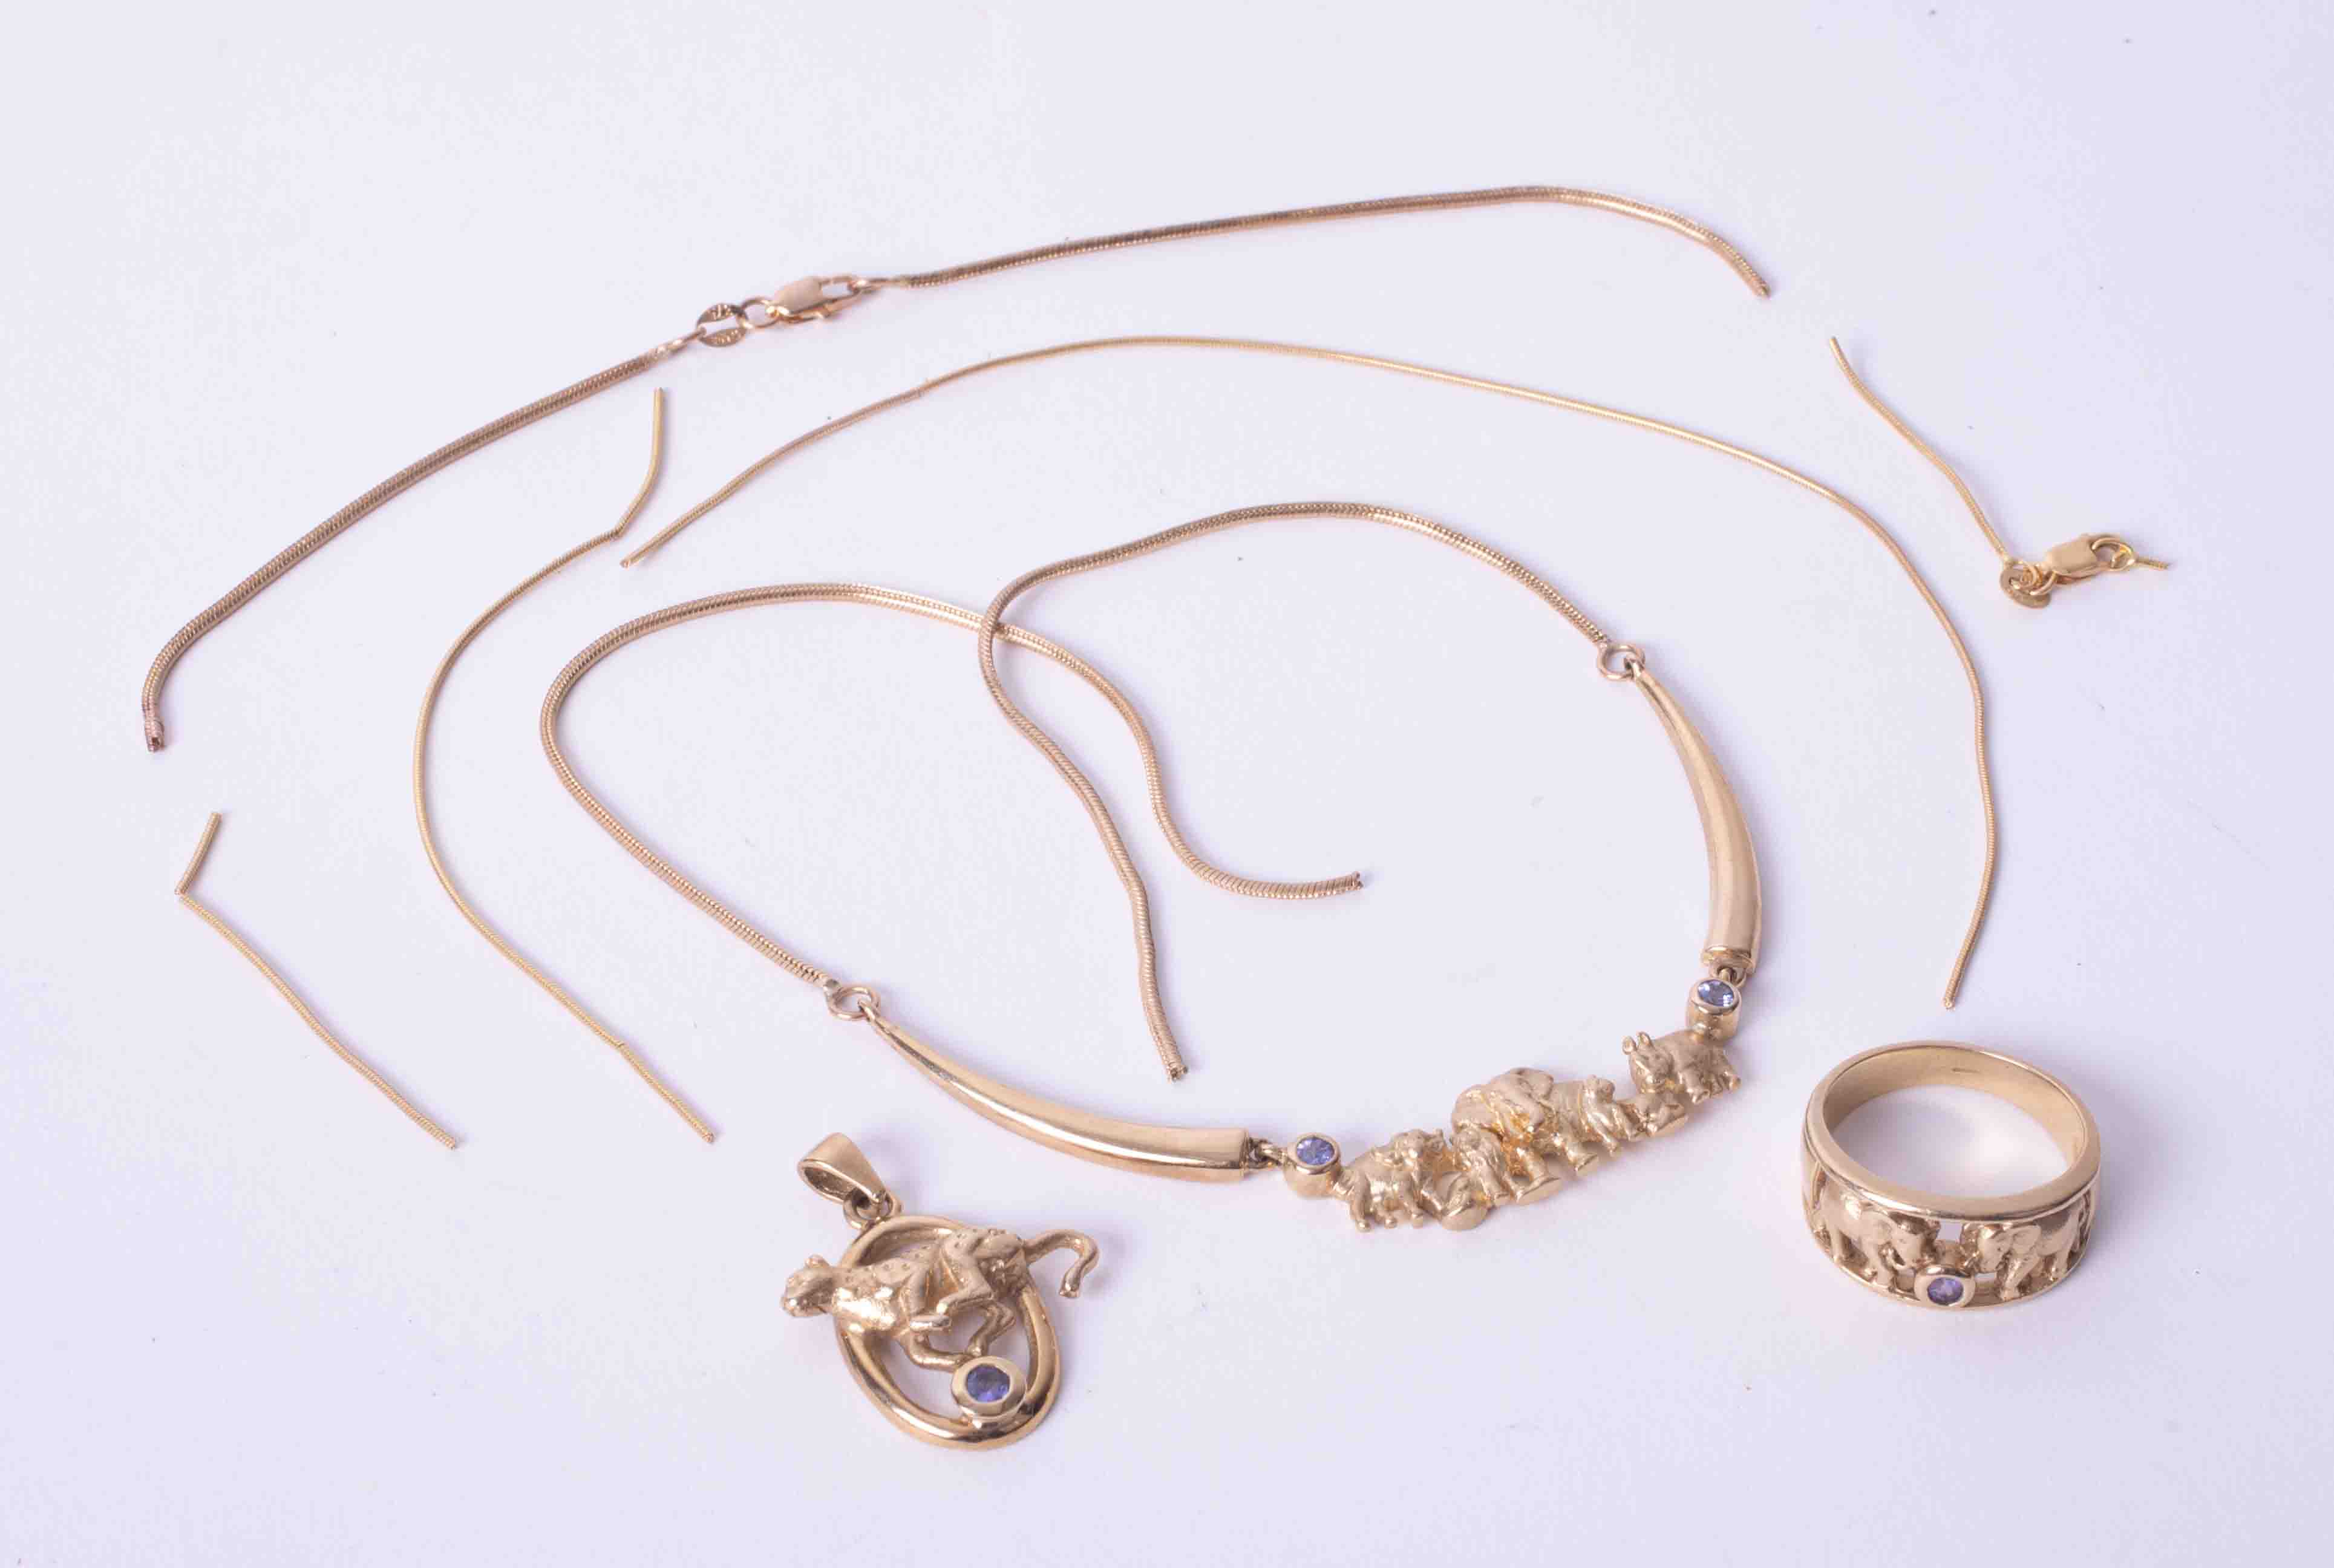 A 9ct gold suite of jewellery including ring, pendant and necklace set with tanzanite and elephants,